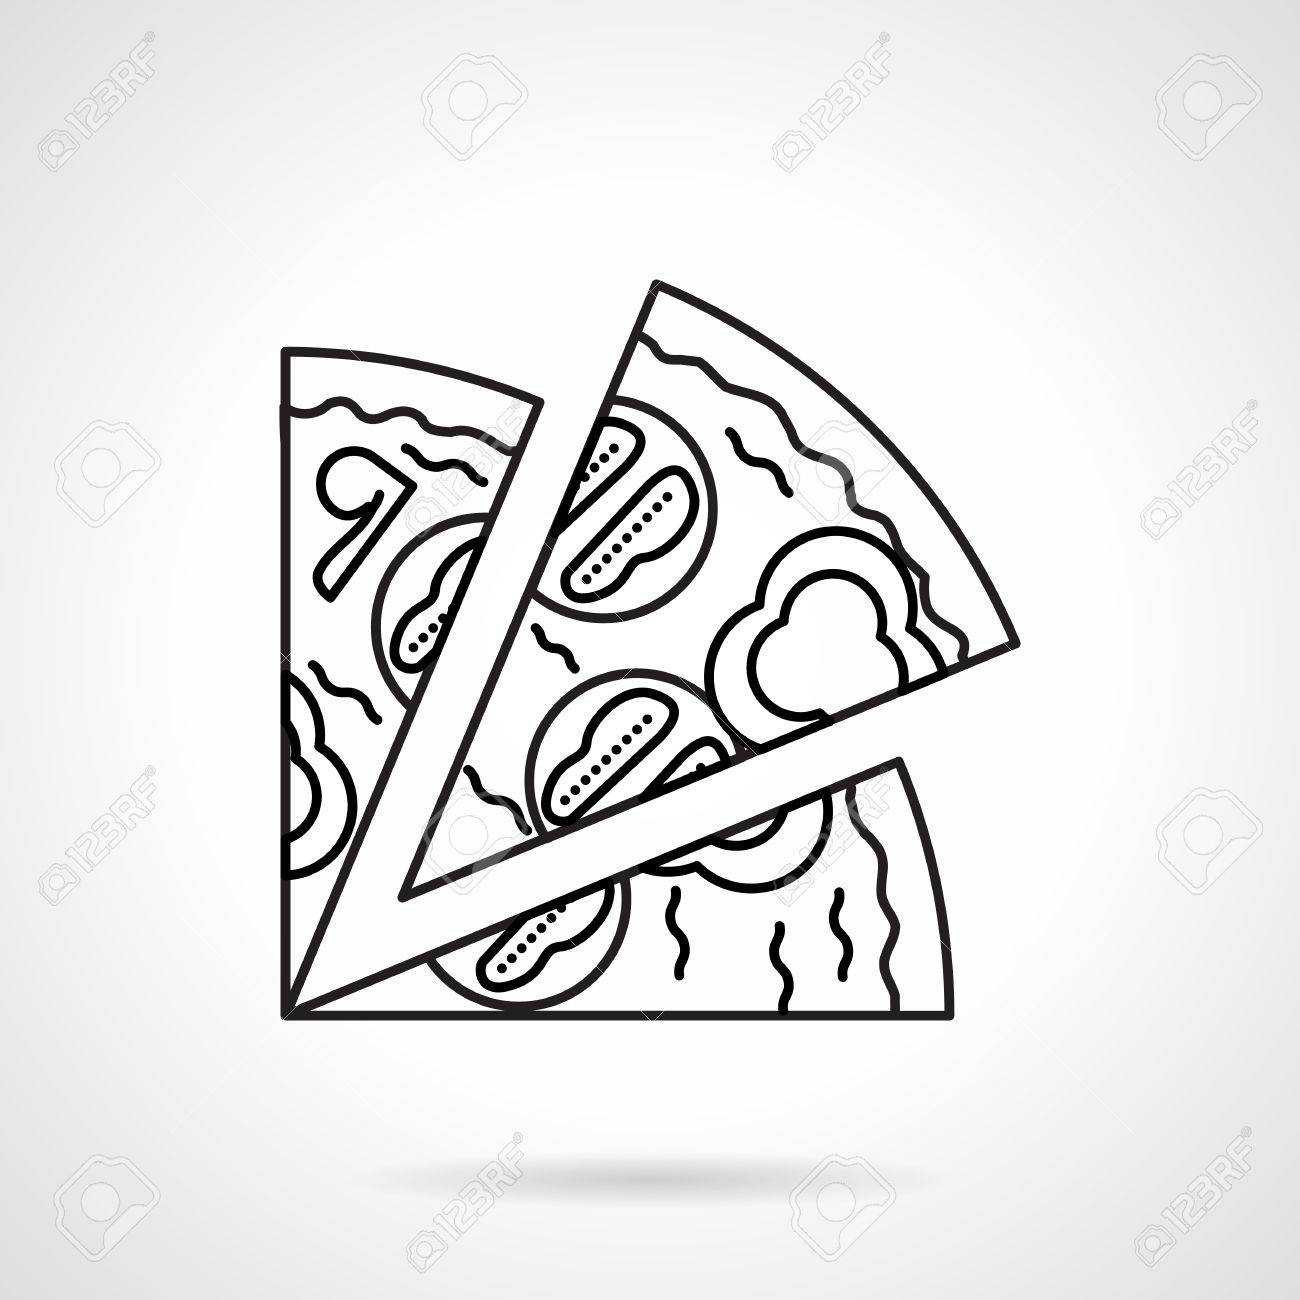 1300x1300 Flat Black Line Vector Icon For Pizza Slices With Mushrooms